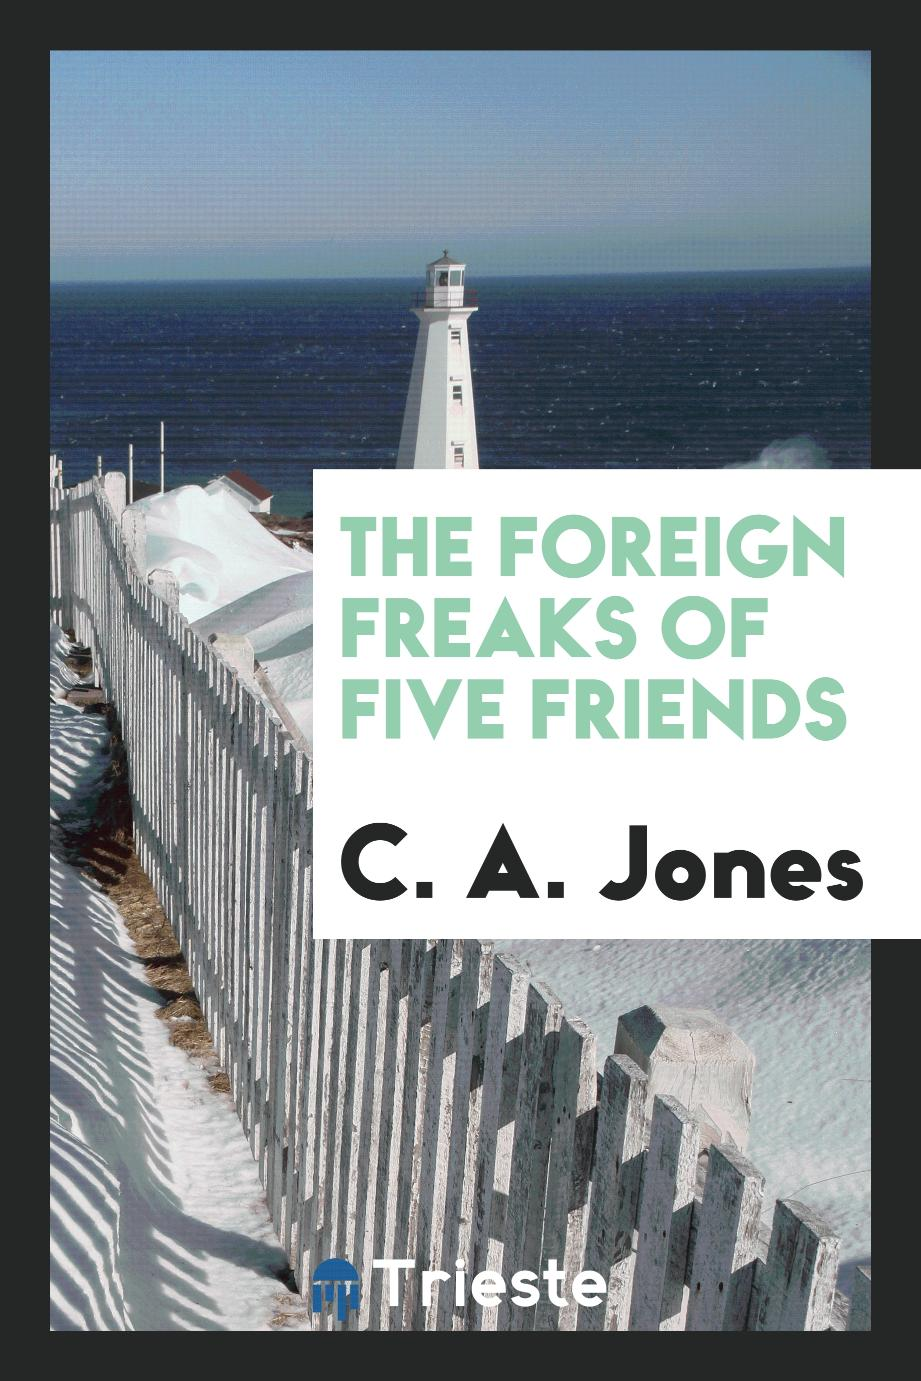 The Foreign Freaks of Five Friends